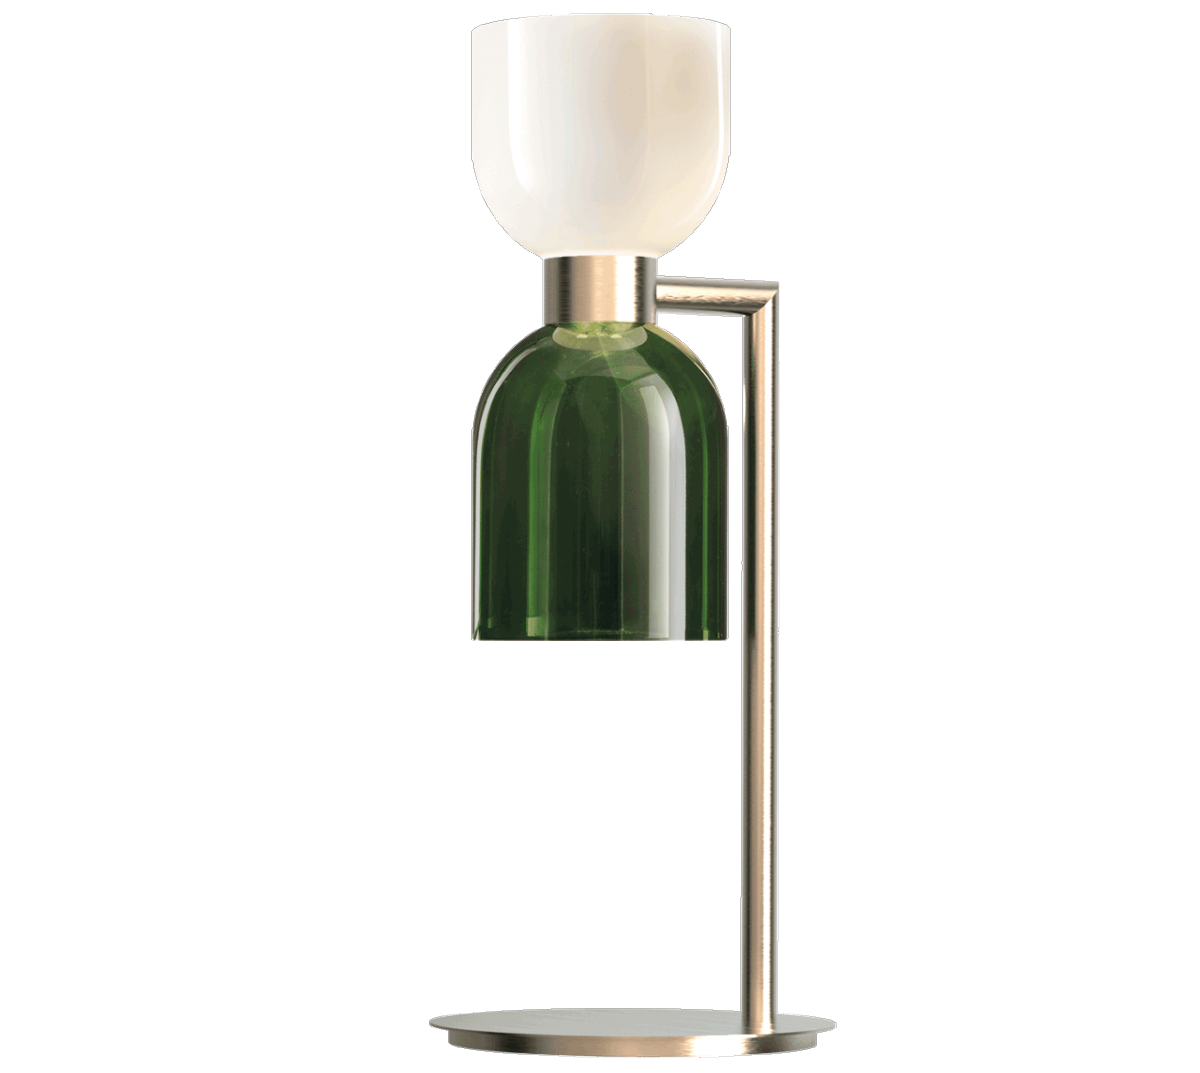 CATERINA DESK - Incanto Modern Collection 4026 / LGCaterina Desk in metal with brushed gold with opal white and green glass diffuserAvailable in different colours.Design THDP & Simone Bretti